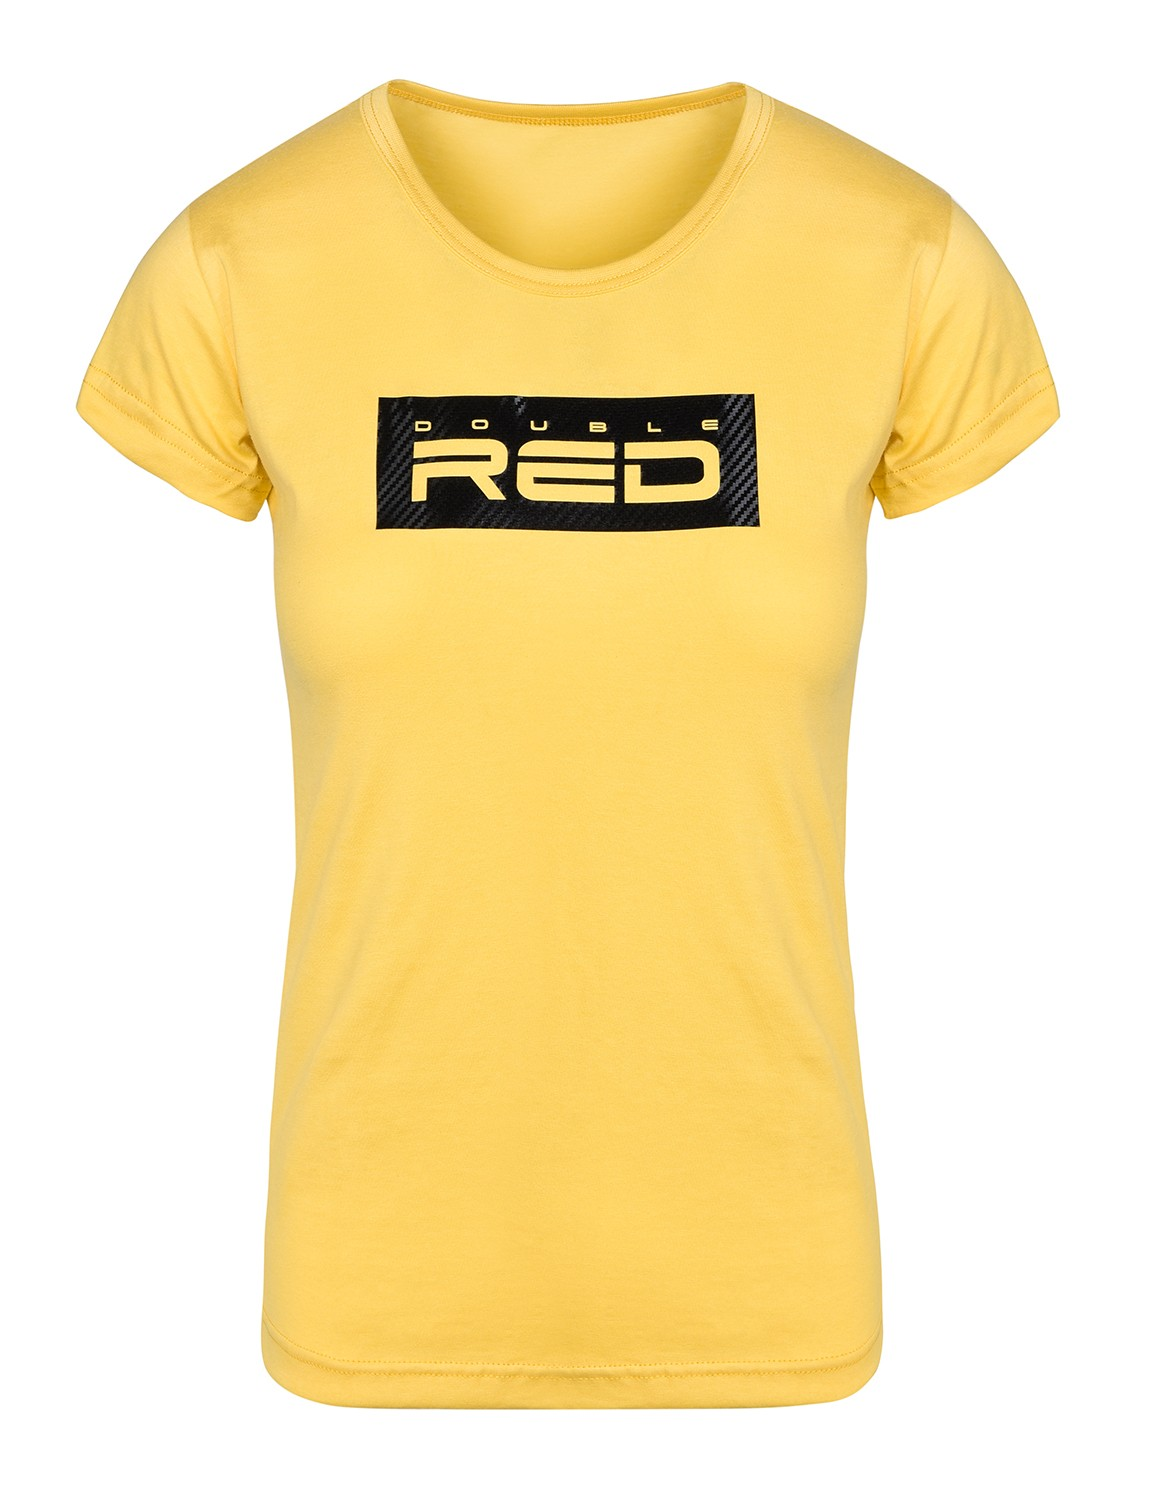 T-shirt CARBON Edition Yellow